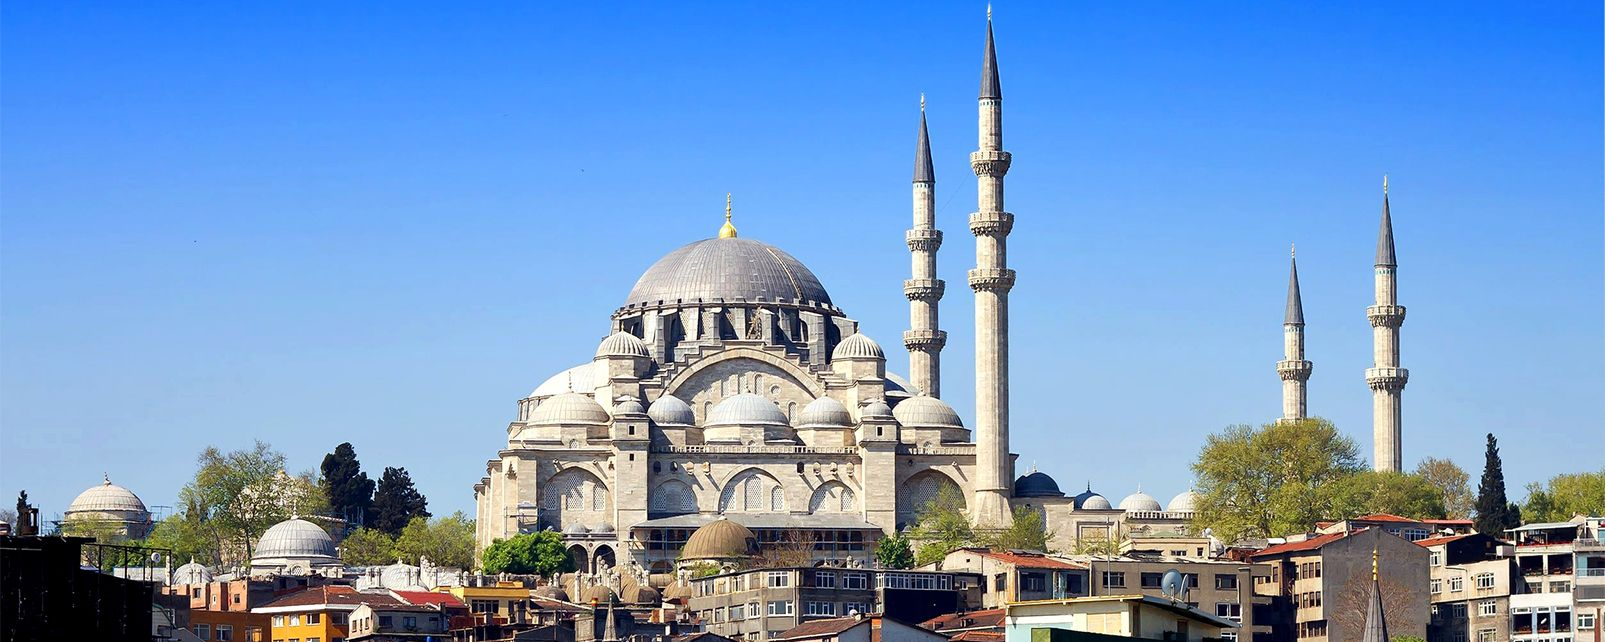 The Süleymaniye Mosque - Turkey